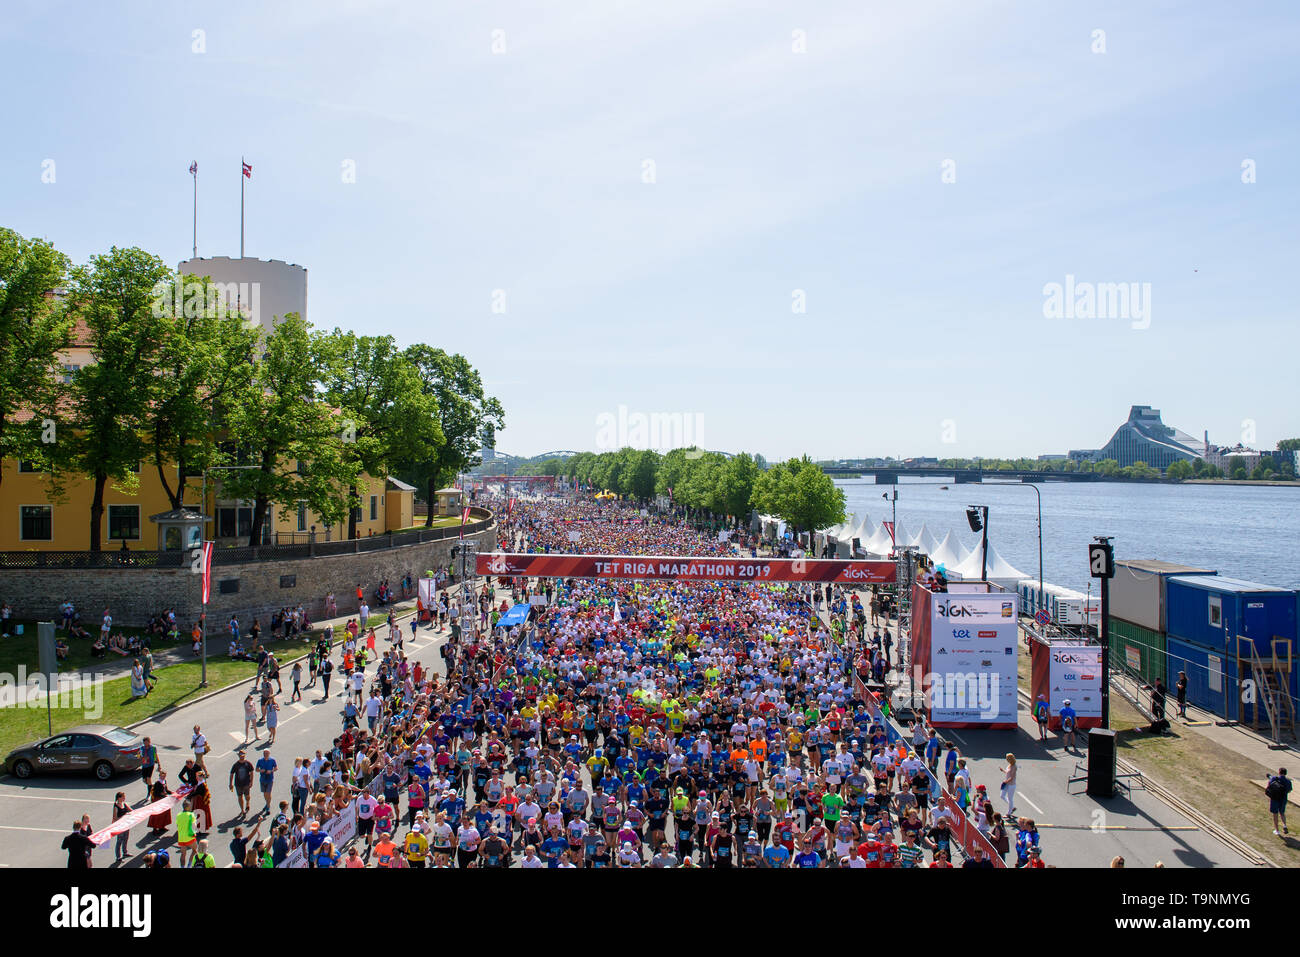 19.05.2019. RIGA, LATVIA. Crowd with people at start zone, during  TET RIGA MARATHON 2019. The only IAAF Gold Label marathon in Northern Europe. Stock Photo